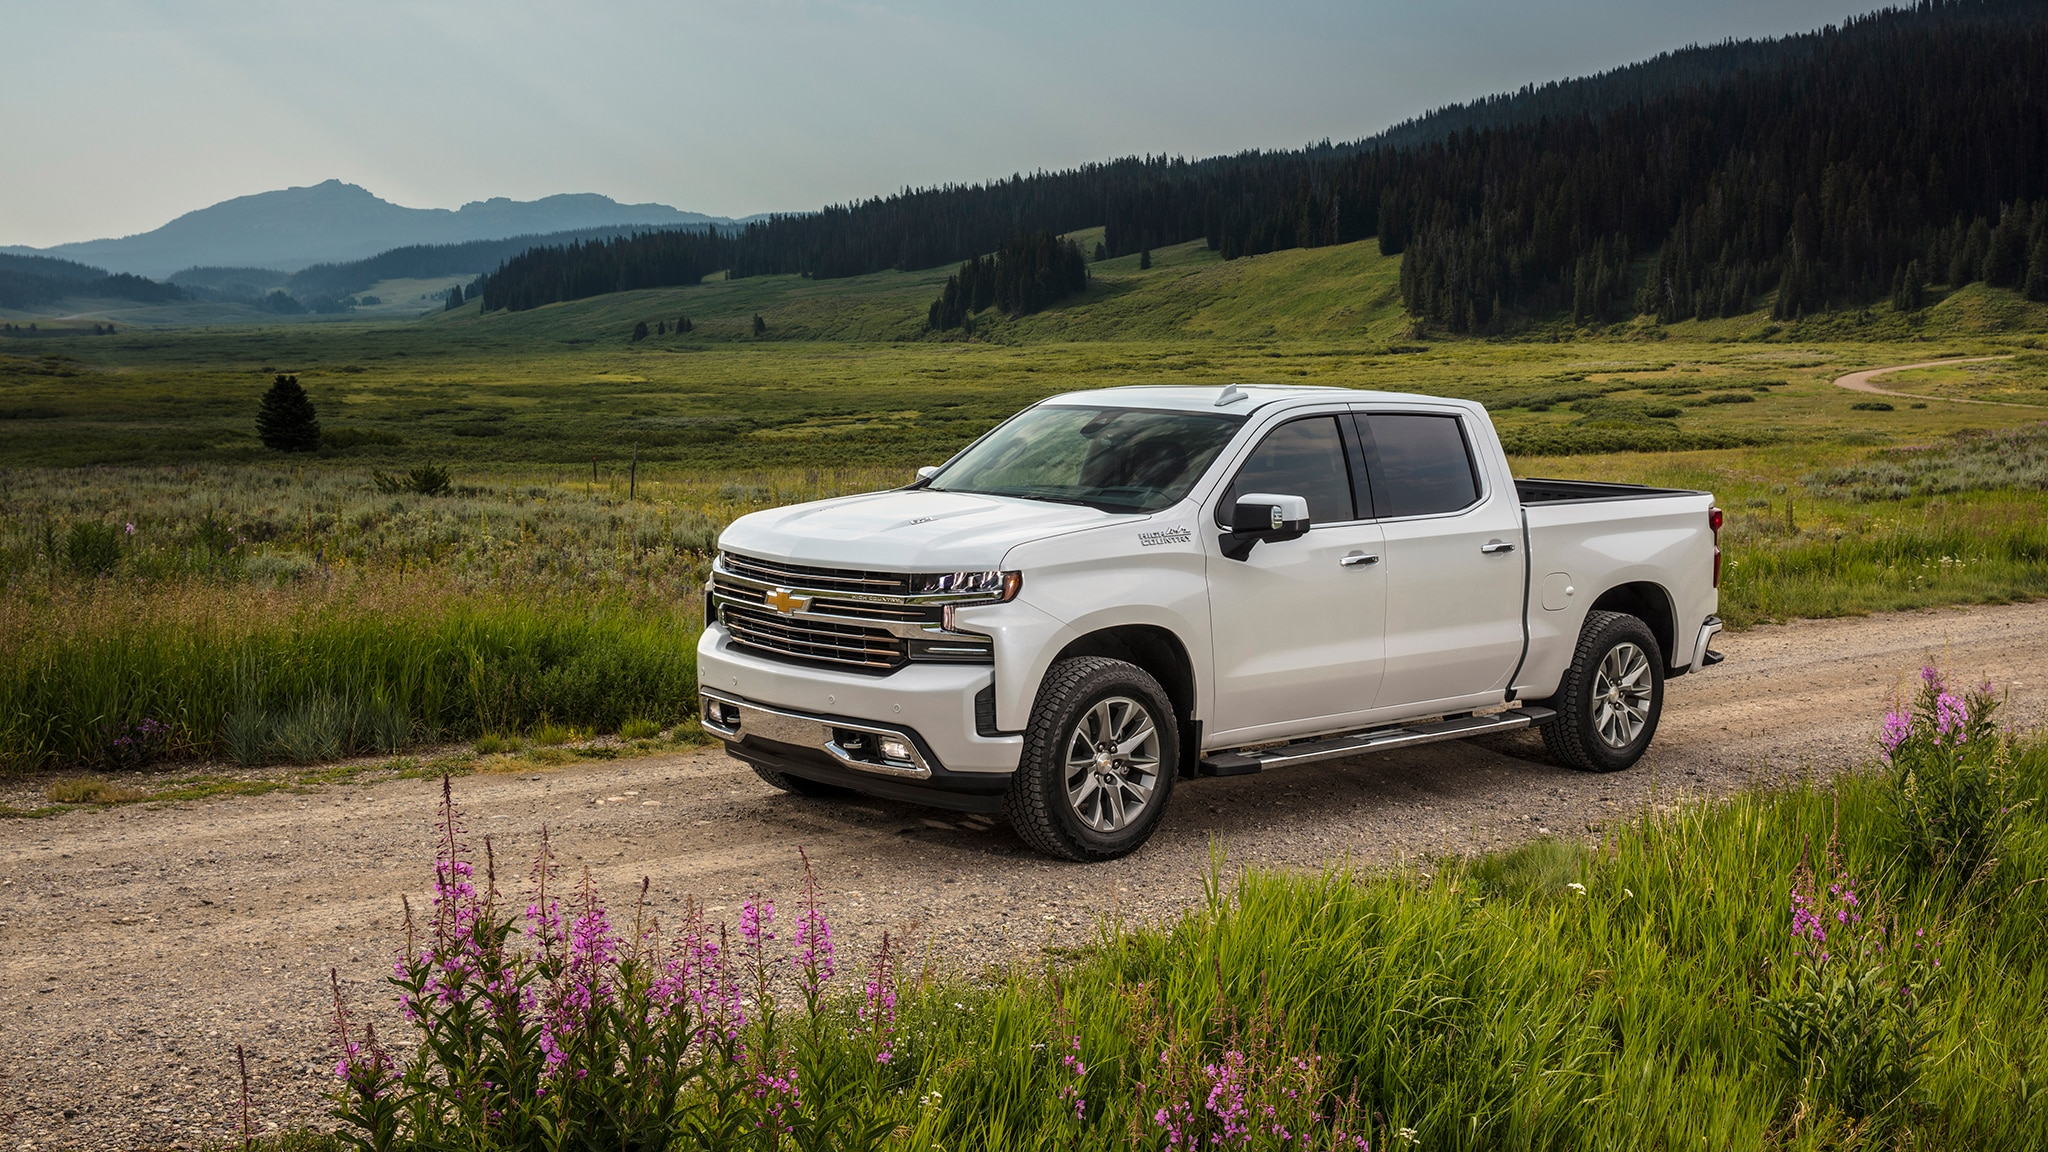 2019 Chevrolet Silverado High Country First Drive Review ...